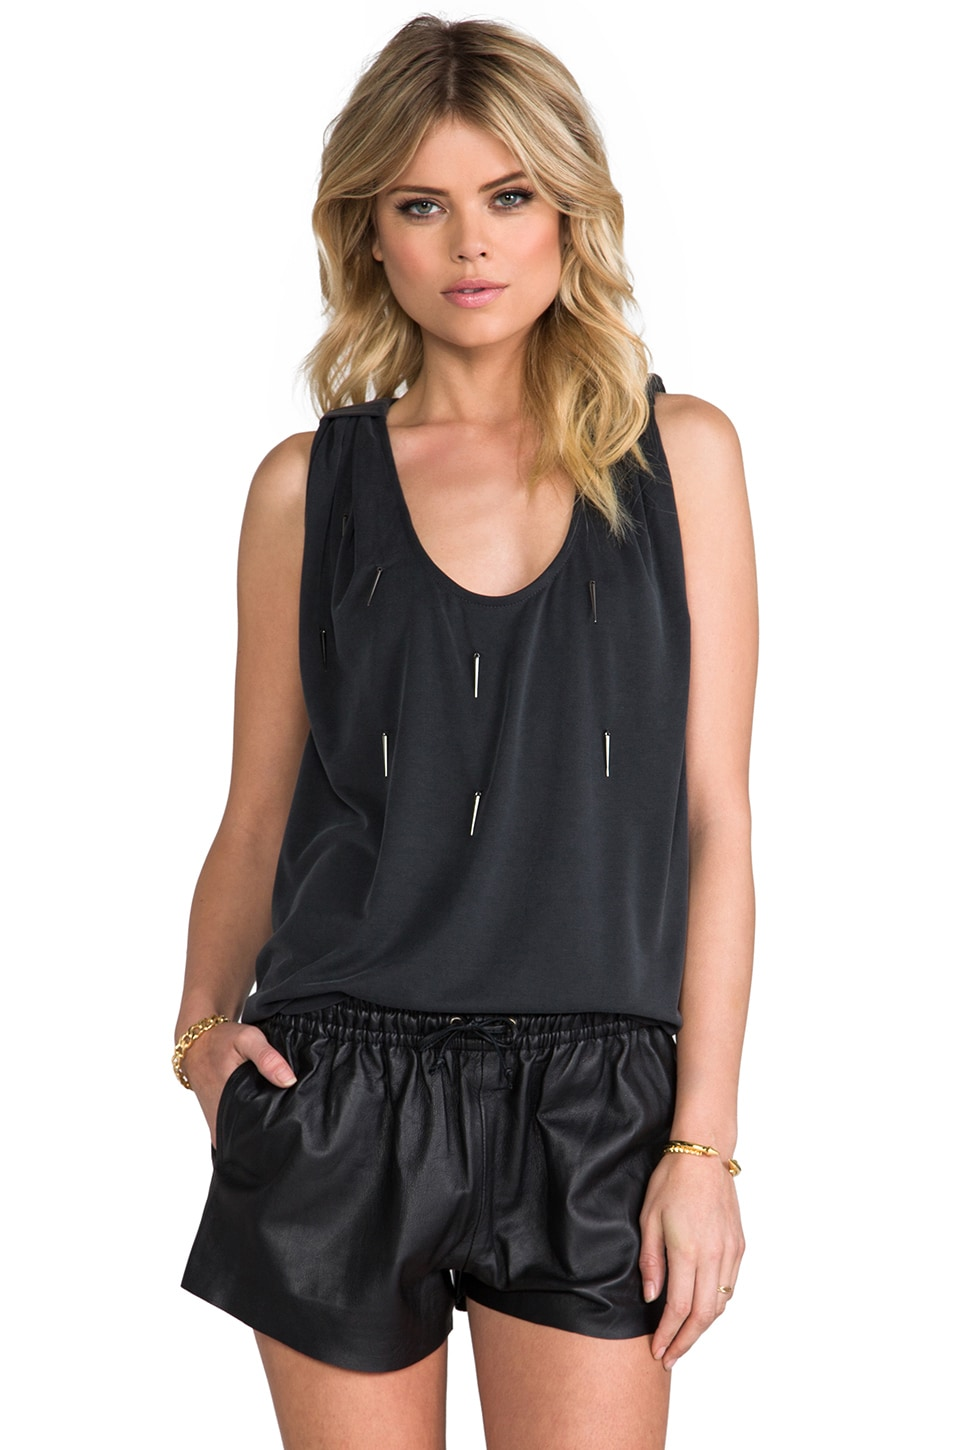 BY ZOE Blister Tank in Charcoal